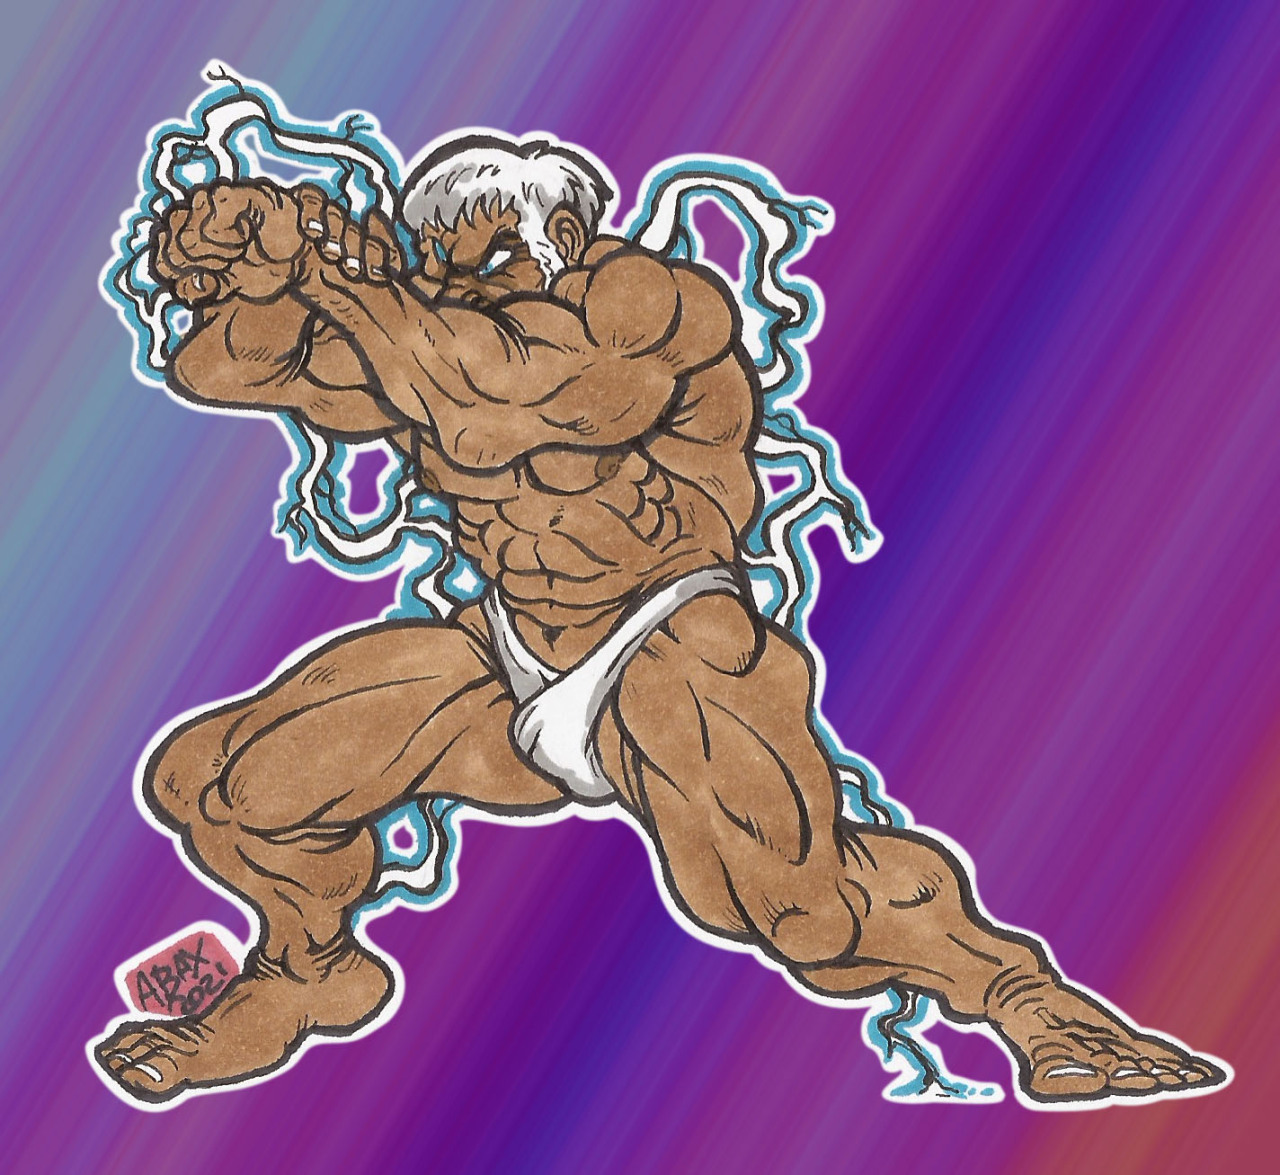 sf3 urien_Doodle_aug2021_01Here is a little doodle of Street Fighter Urien, he debut in the 3rd revision of Street Fighter 3, he is Brother to the main boss Gill and hopes to usurp his throne one day as head of the illuminati. Urien has power over lightning and metal I believe while his brother has fire and ice at his finger tips, here I drew him charging up for his projectile attack, metallic sphere I believe.  I was always very impressed with Uriens sprite work and indeed all the street fighter 3 sprite art when i saw it back in the late 90s, its widely considered the finest sprite art of its era, so yeah here is my little tribute to an awesome game, Enjoy! #warrior#urien#third#strong#strike#street#metallic#reflector#muscles#sprite#lighting#aegis#fighter#fighting#game#capcom#beat#dude#buff#iii#3#up#em#2d#sf#streetfighter